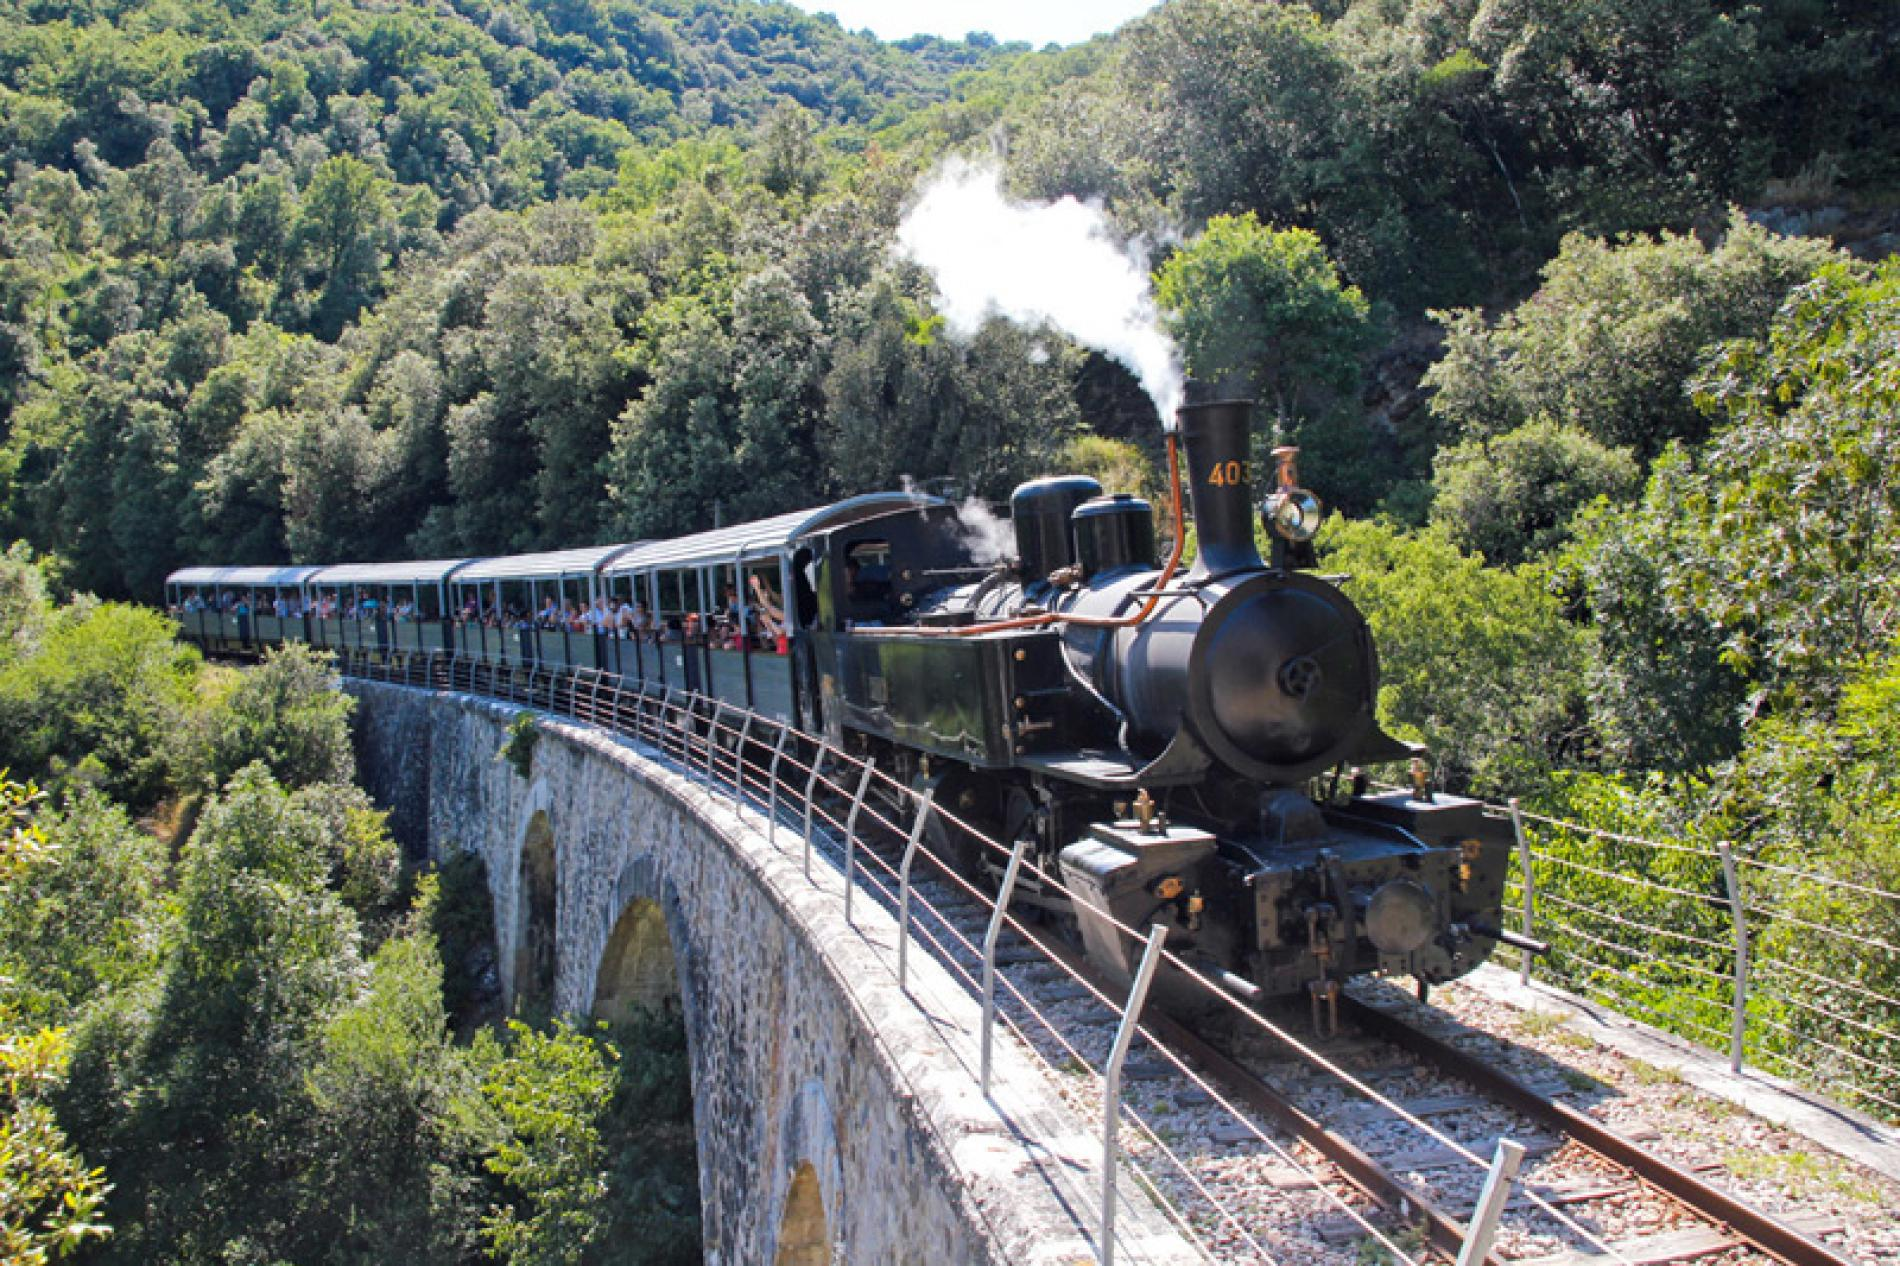 The Ardèche Train